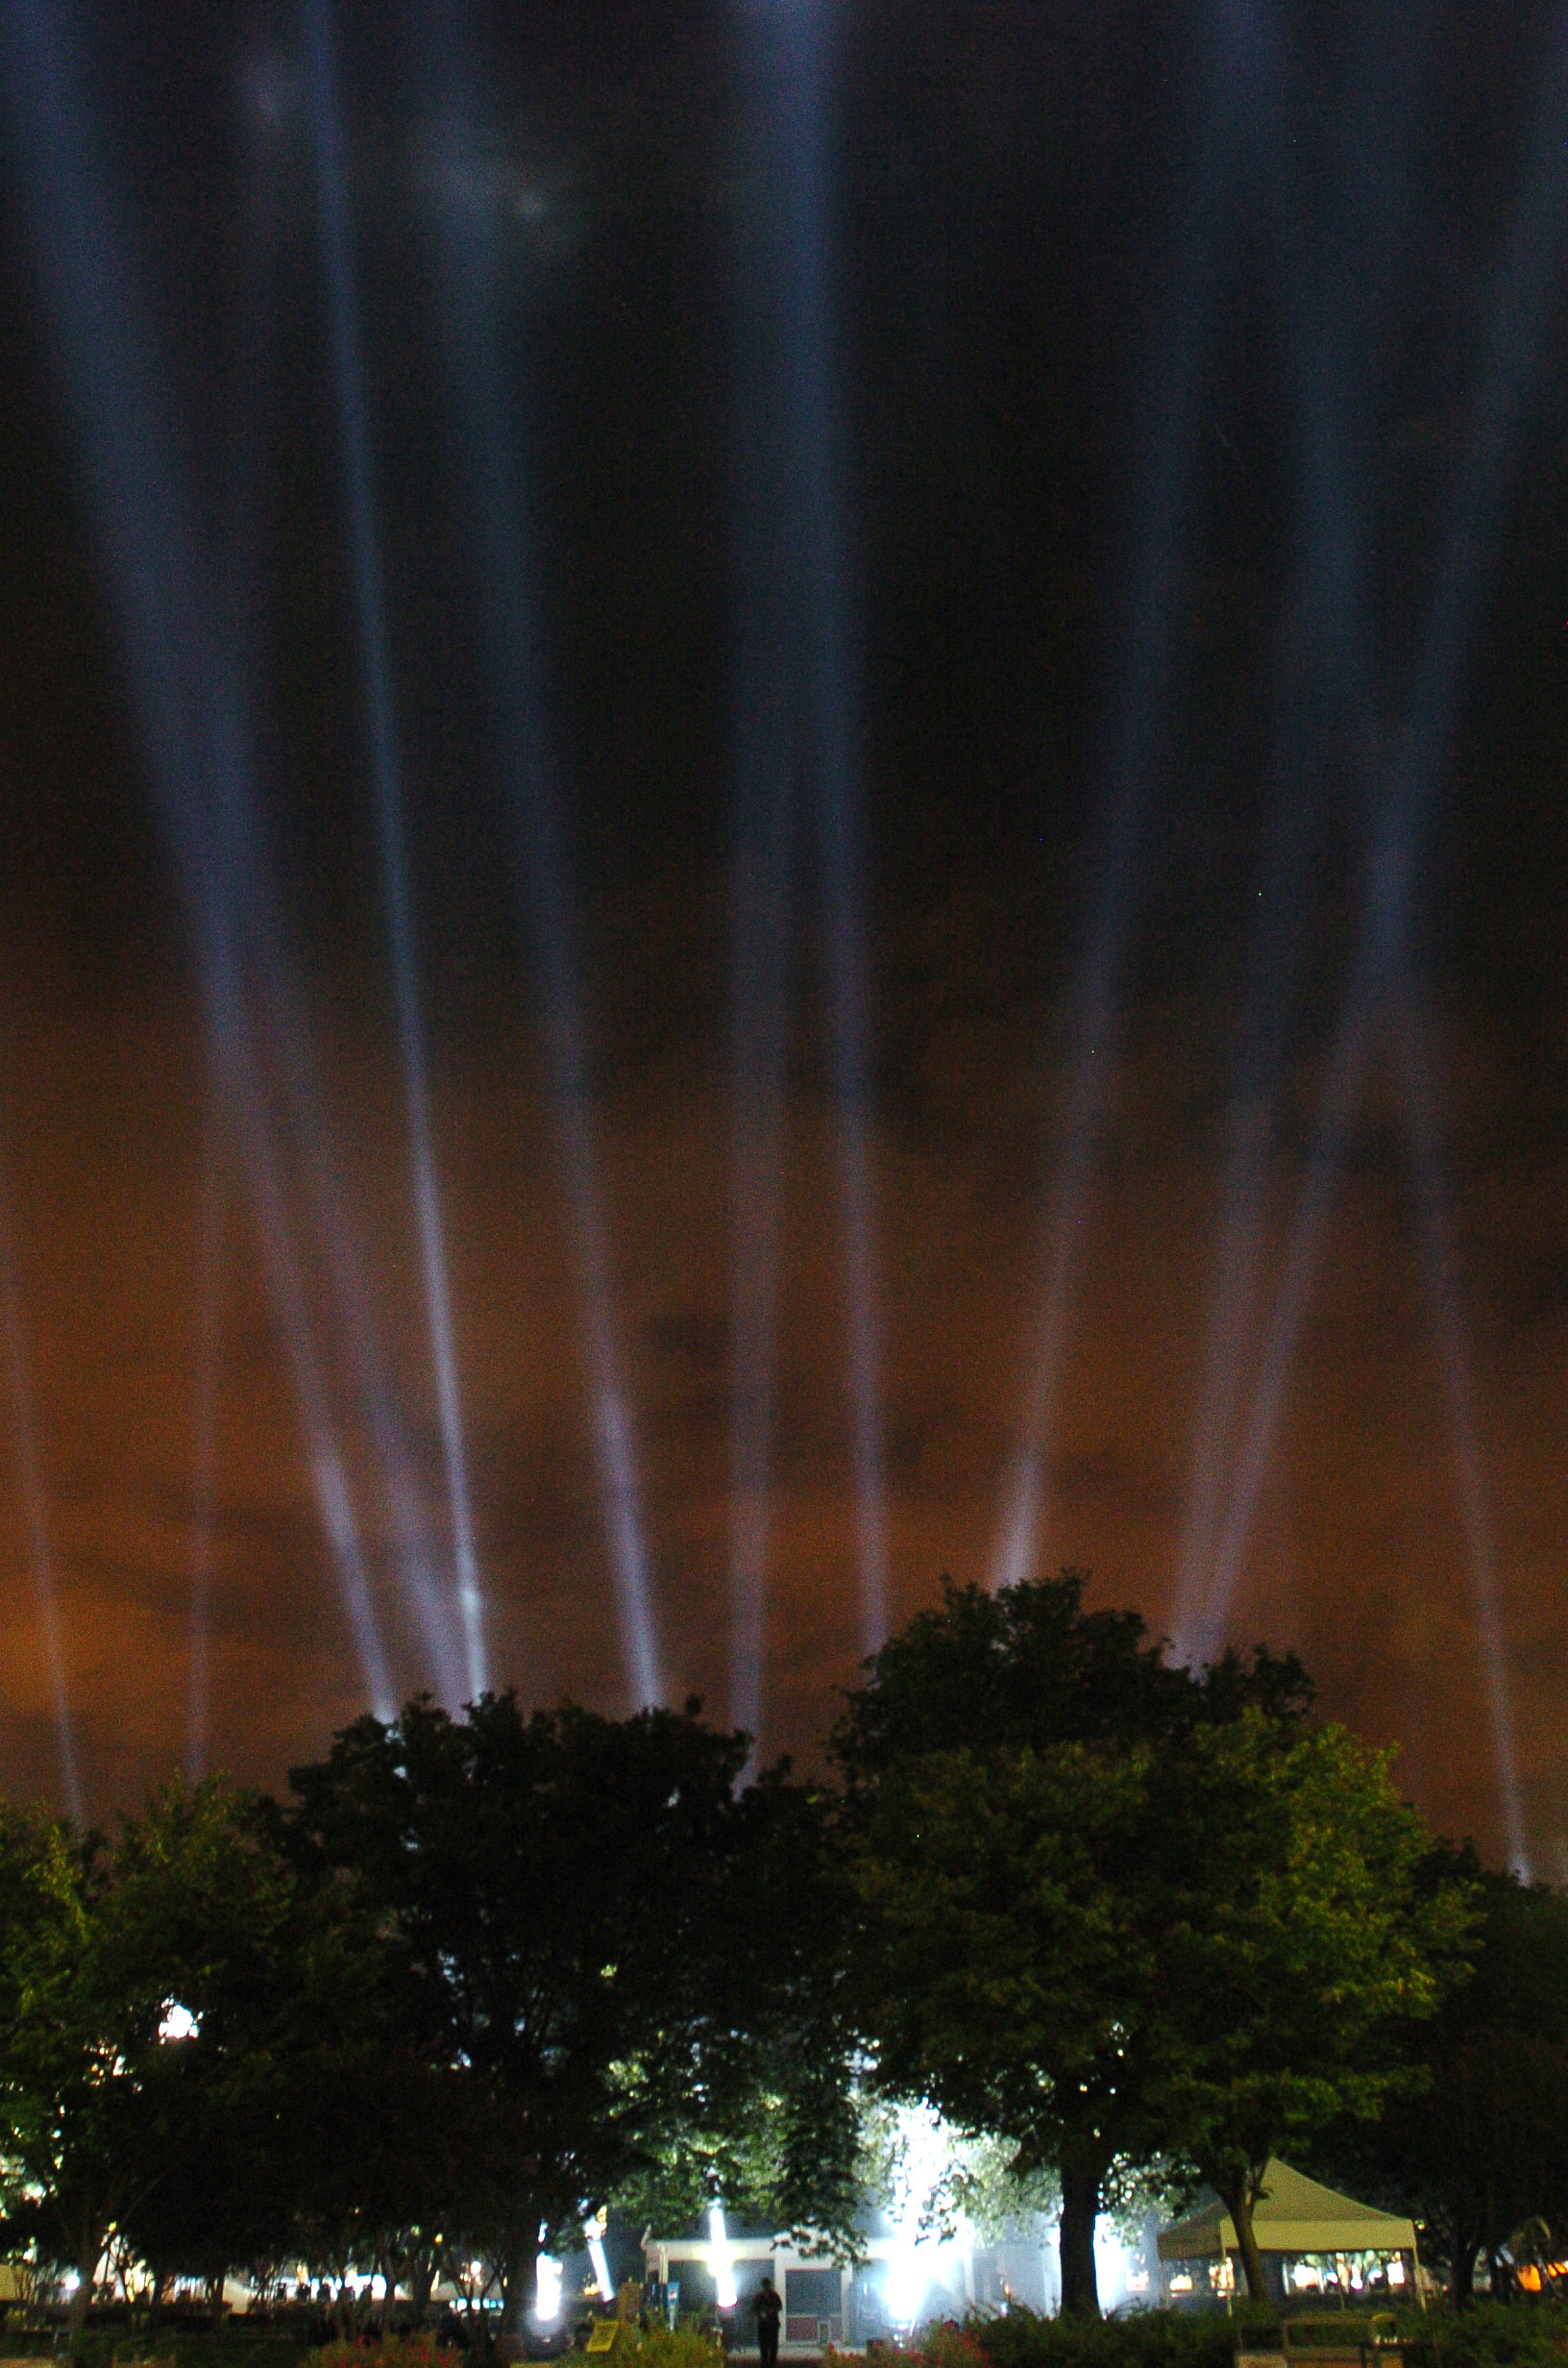 File:US Navy 060910-N-0696M-259 184 beams of light projected from the Pentagon courtyard illuminate the night sky to commemorate each life lost at the ...